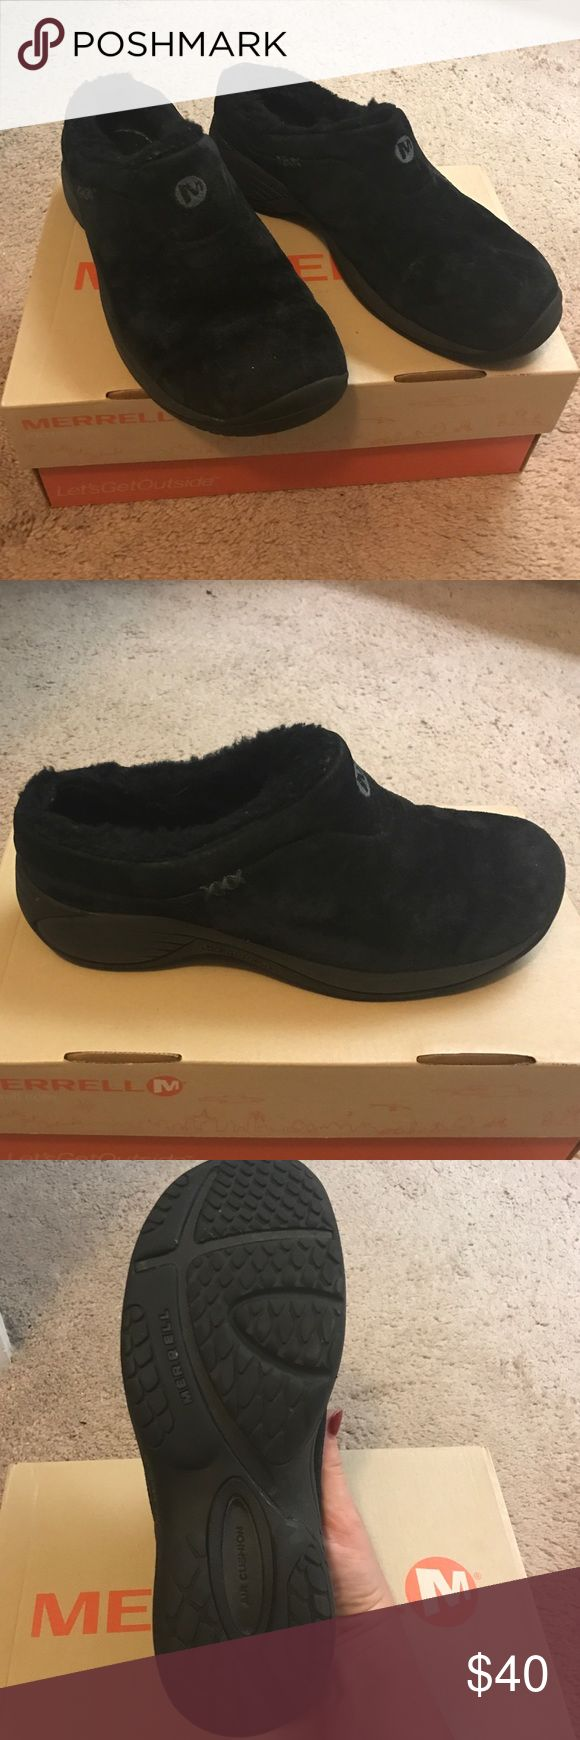 Merrill shoes Size 7.5 Merrell clog type shoes with insulated inside.. very comfy only wore a couple of times Merrell Shoes Mules & Clogs